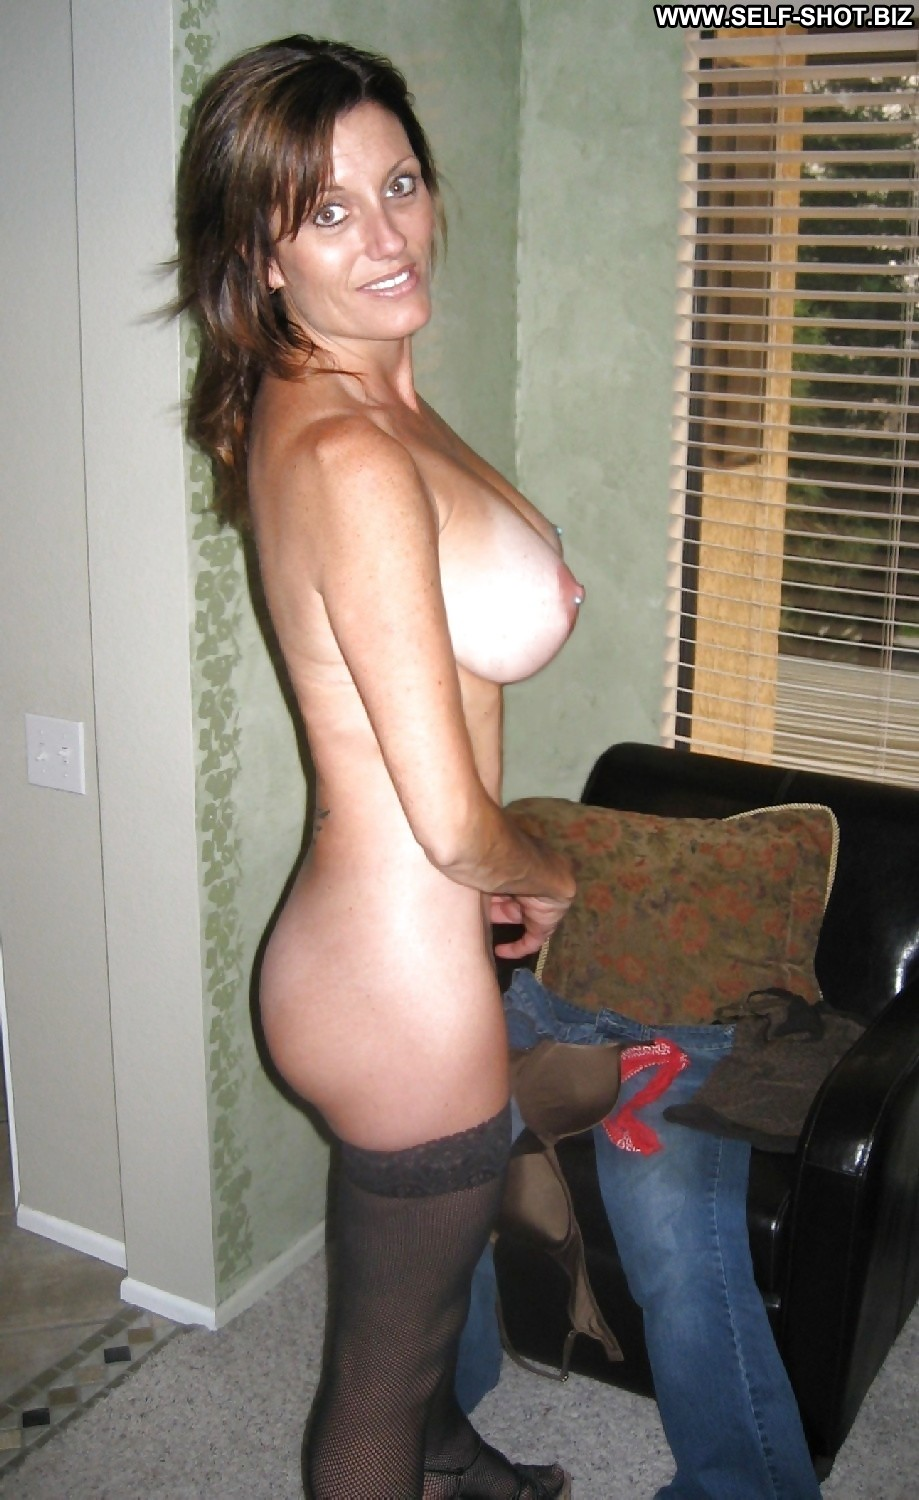 Cant decide busty real milf haven't